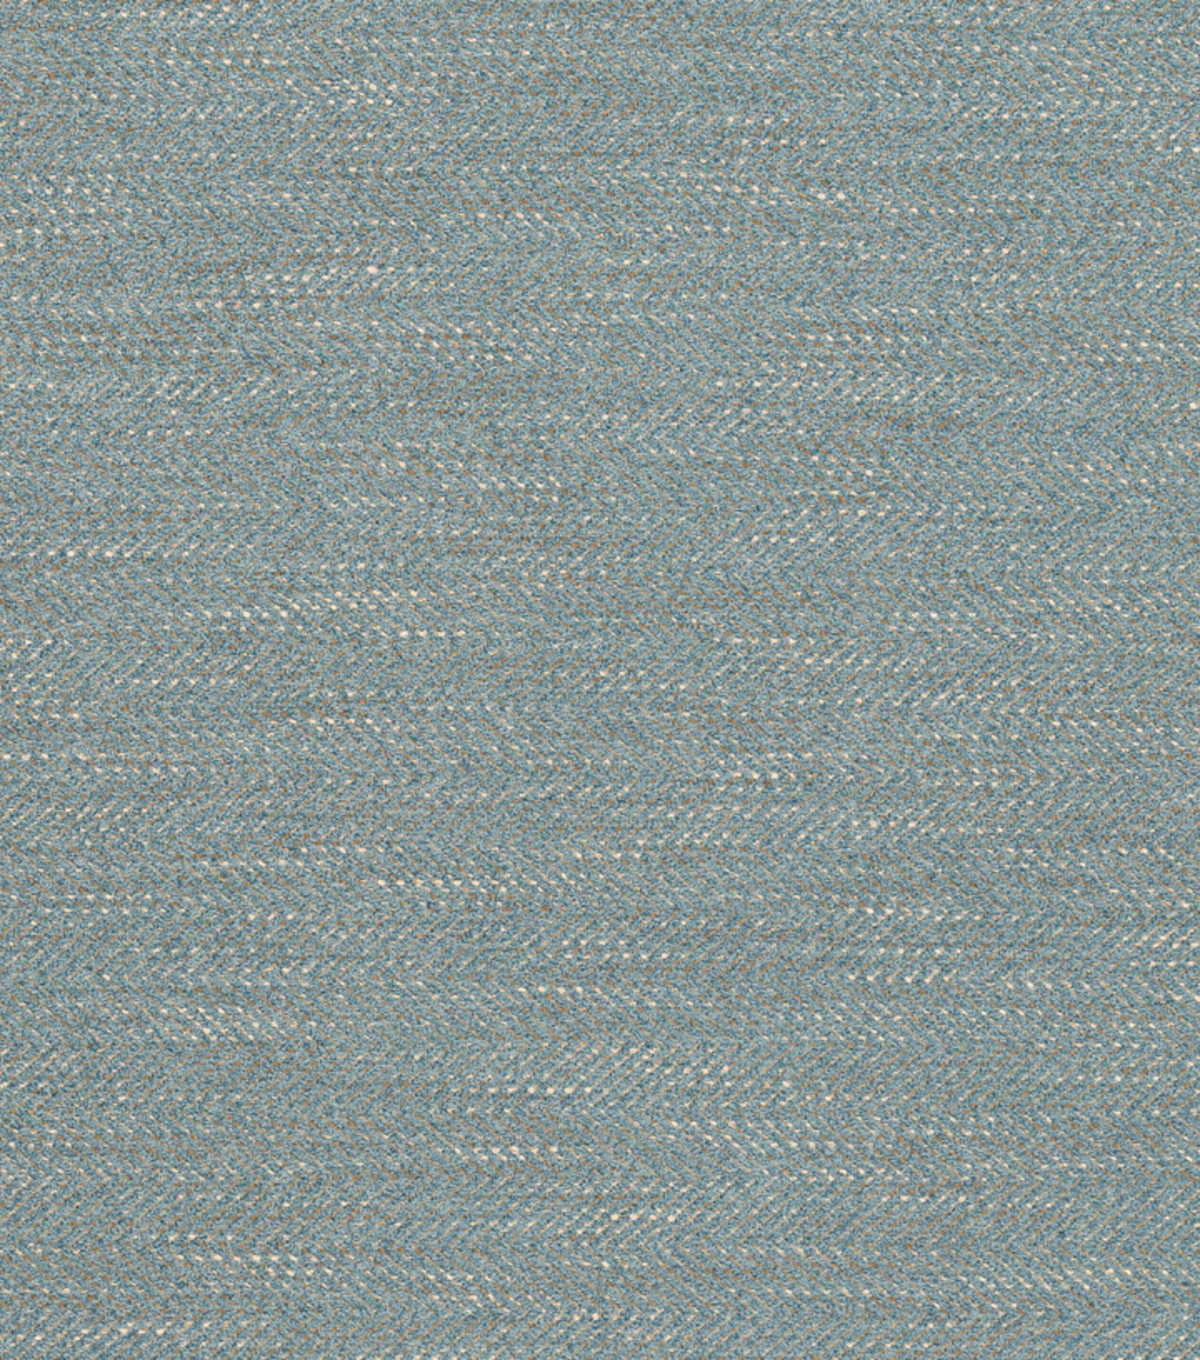 Home Decor 8\u0022x8\u0022 Fabric Swatch-Colorado Sky